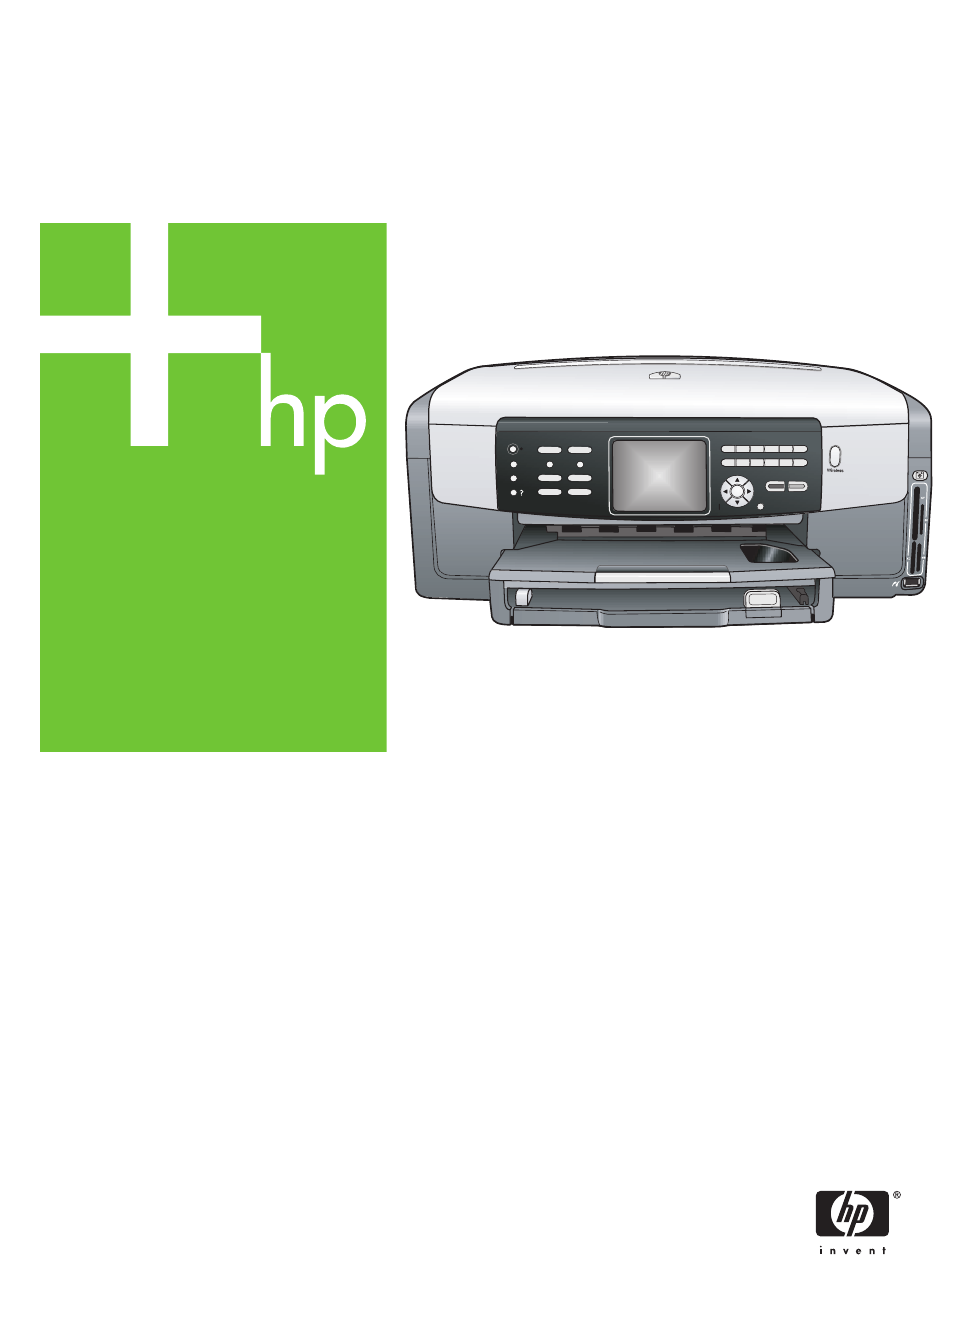 HP Photosmart 3310 All-in-One Printer User's Manual - Free